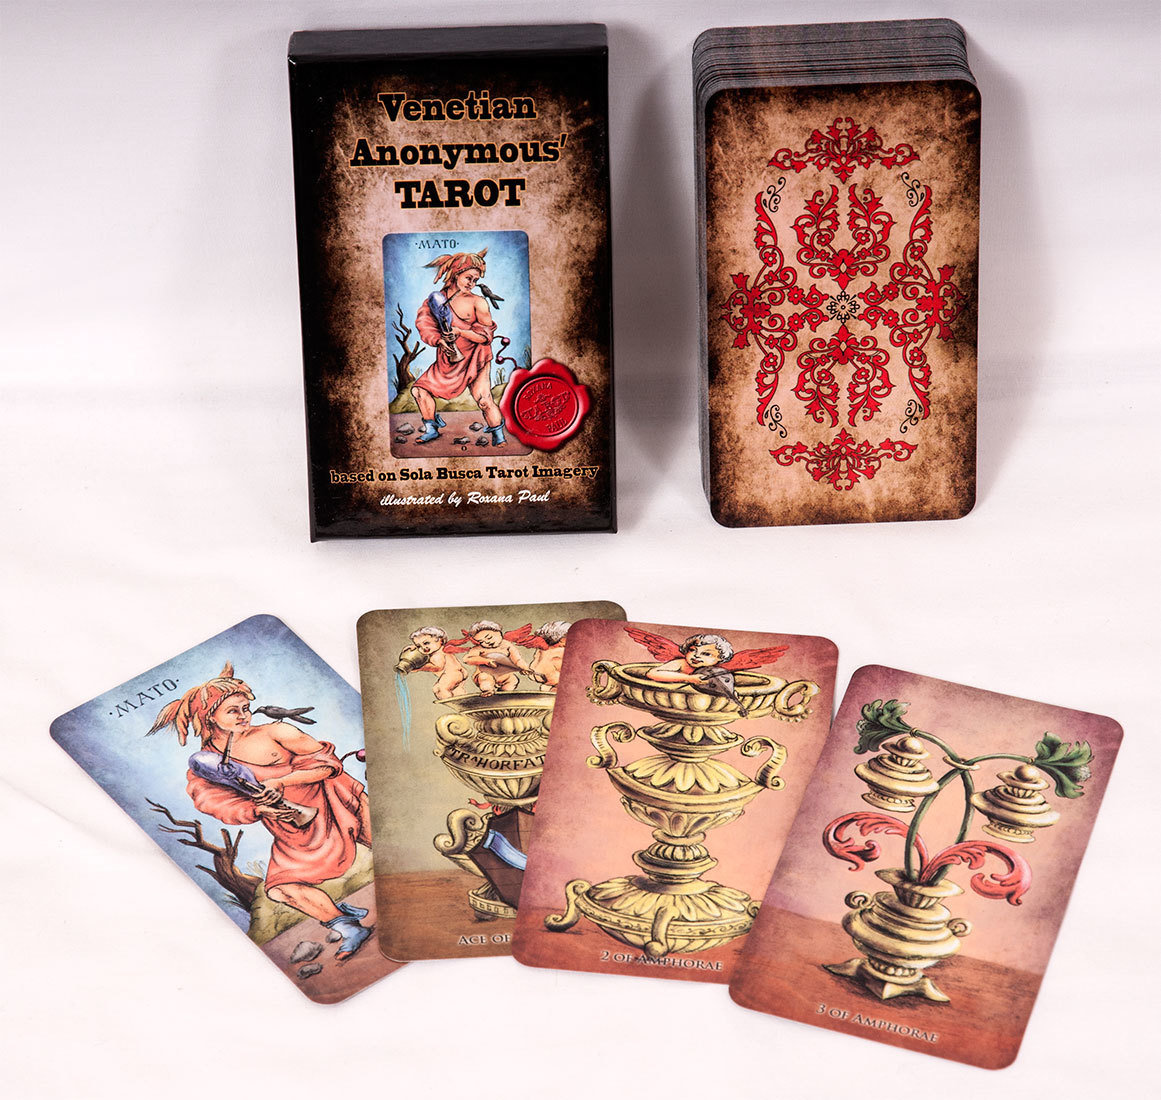 Venetian Anonymous Tarot, STANDARD SIZE, FREE SHIPPING WORLDWIDE, price in USD